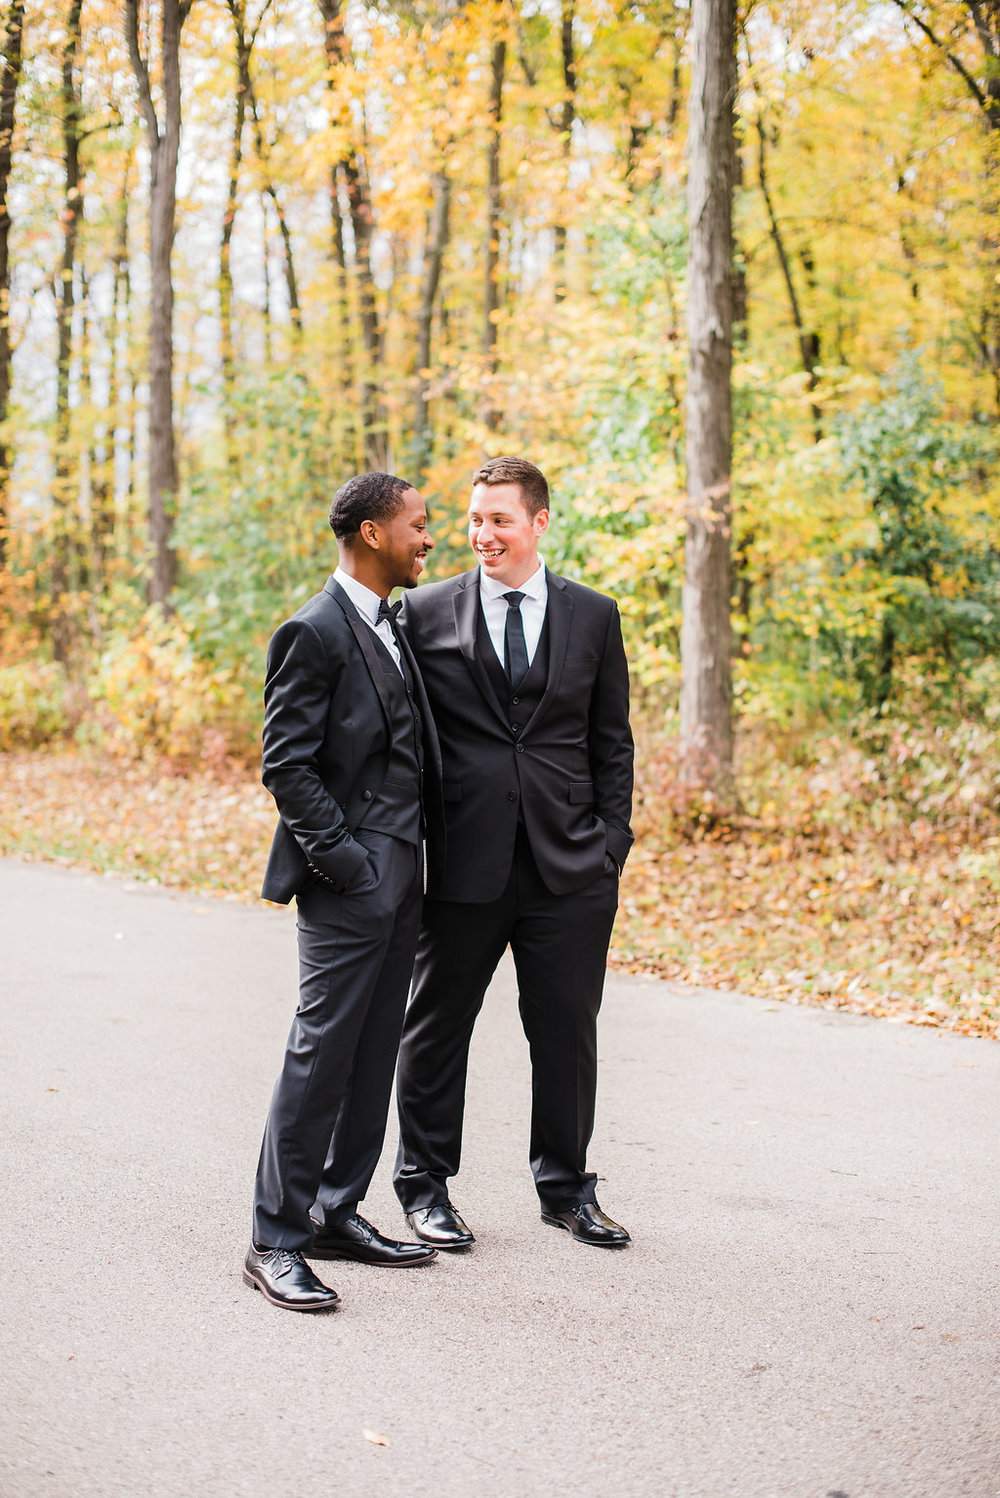 RiverClubofMequon-MequonWI-LGBT-Gay-StyledShoot-2.jpg